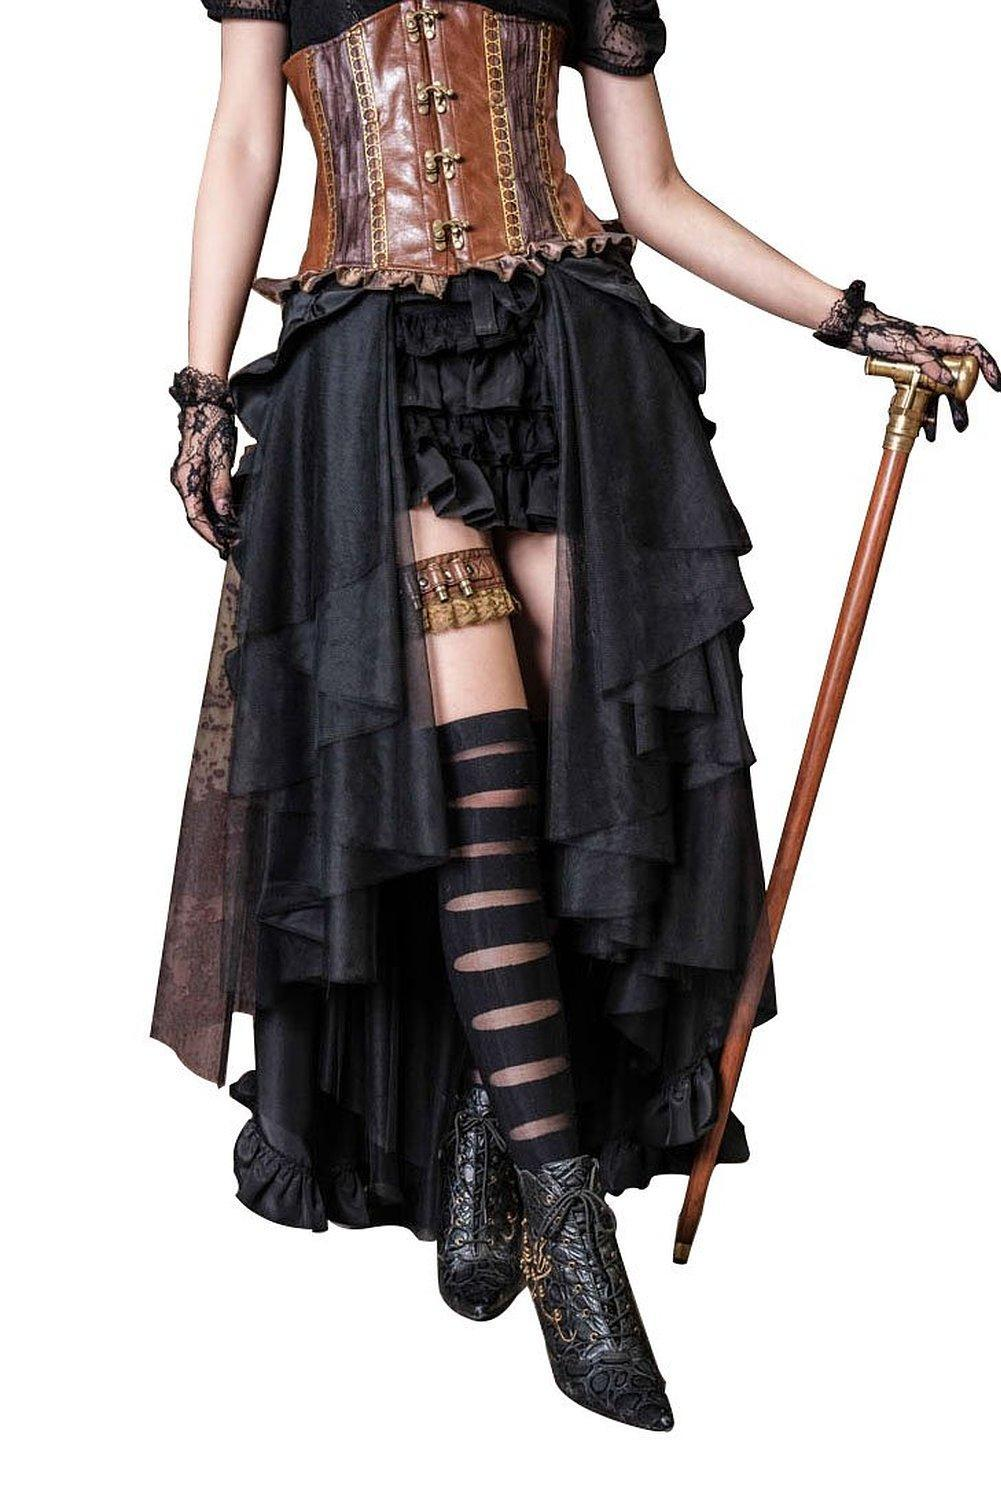 Diy Pirate Costume Female Ideas For Android Apk Download